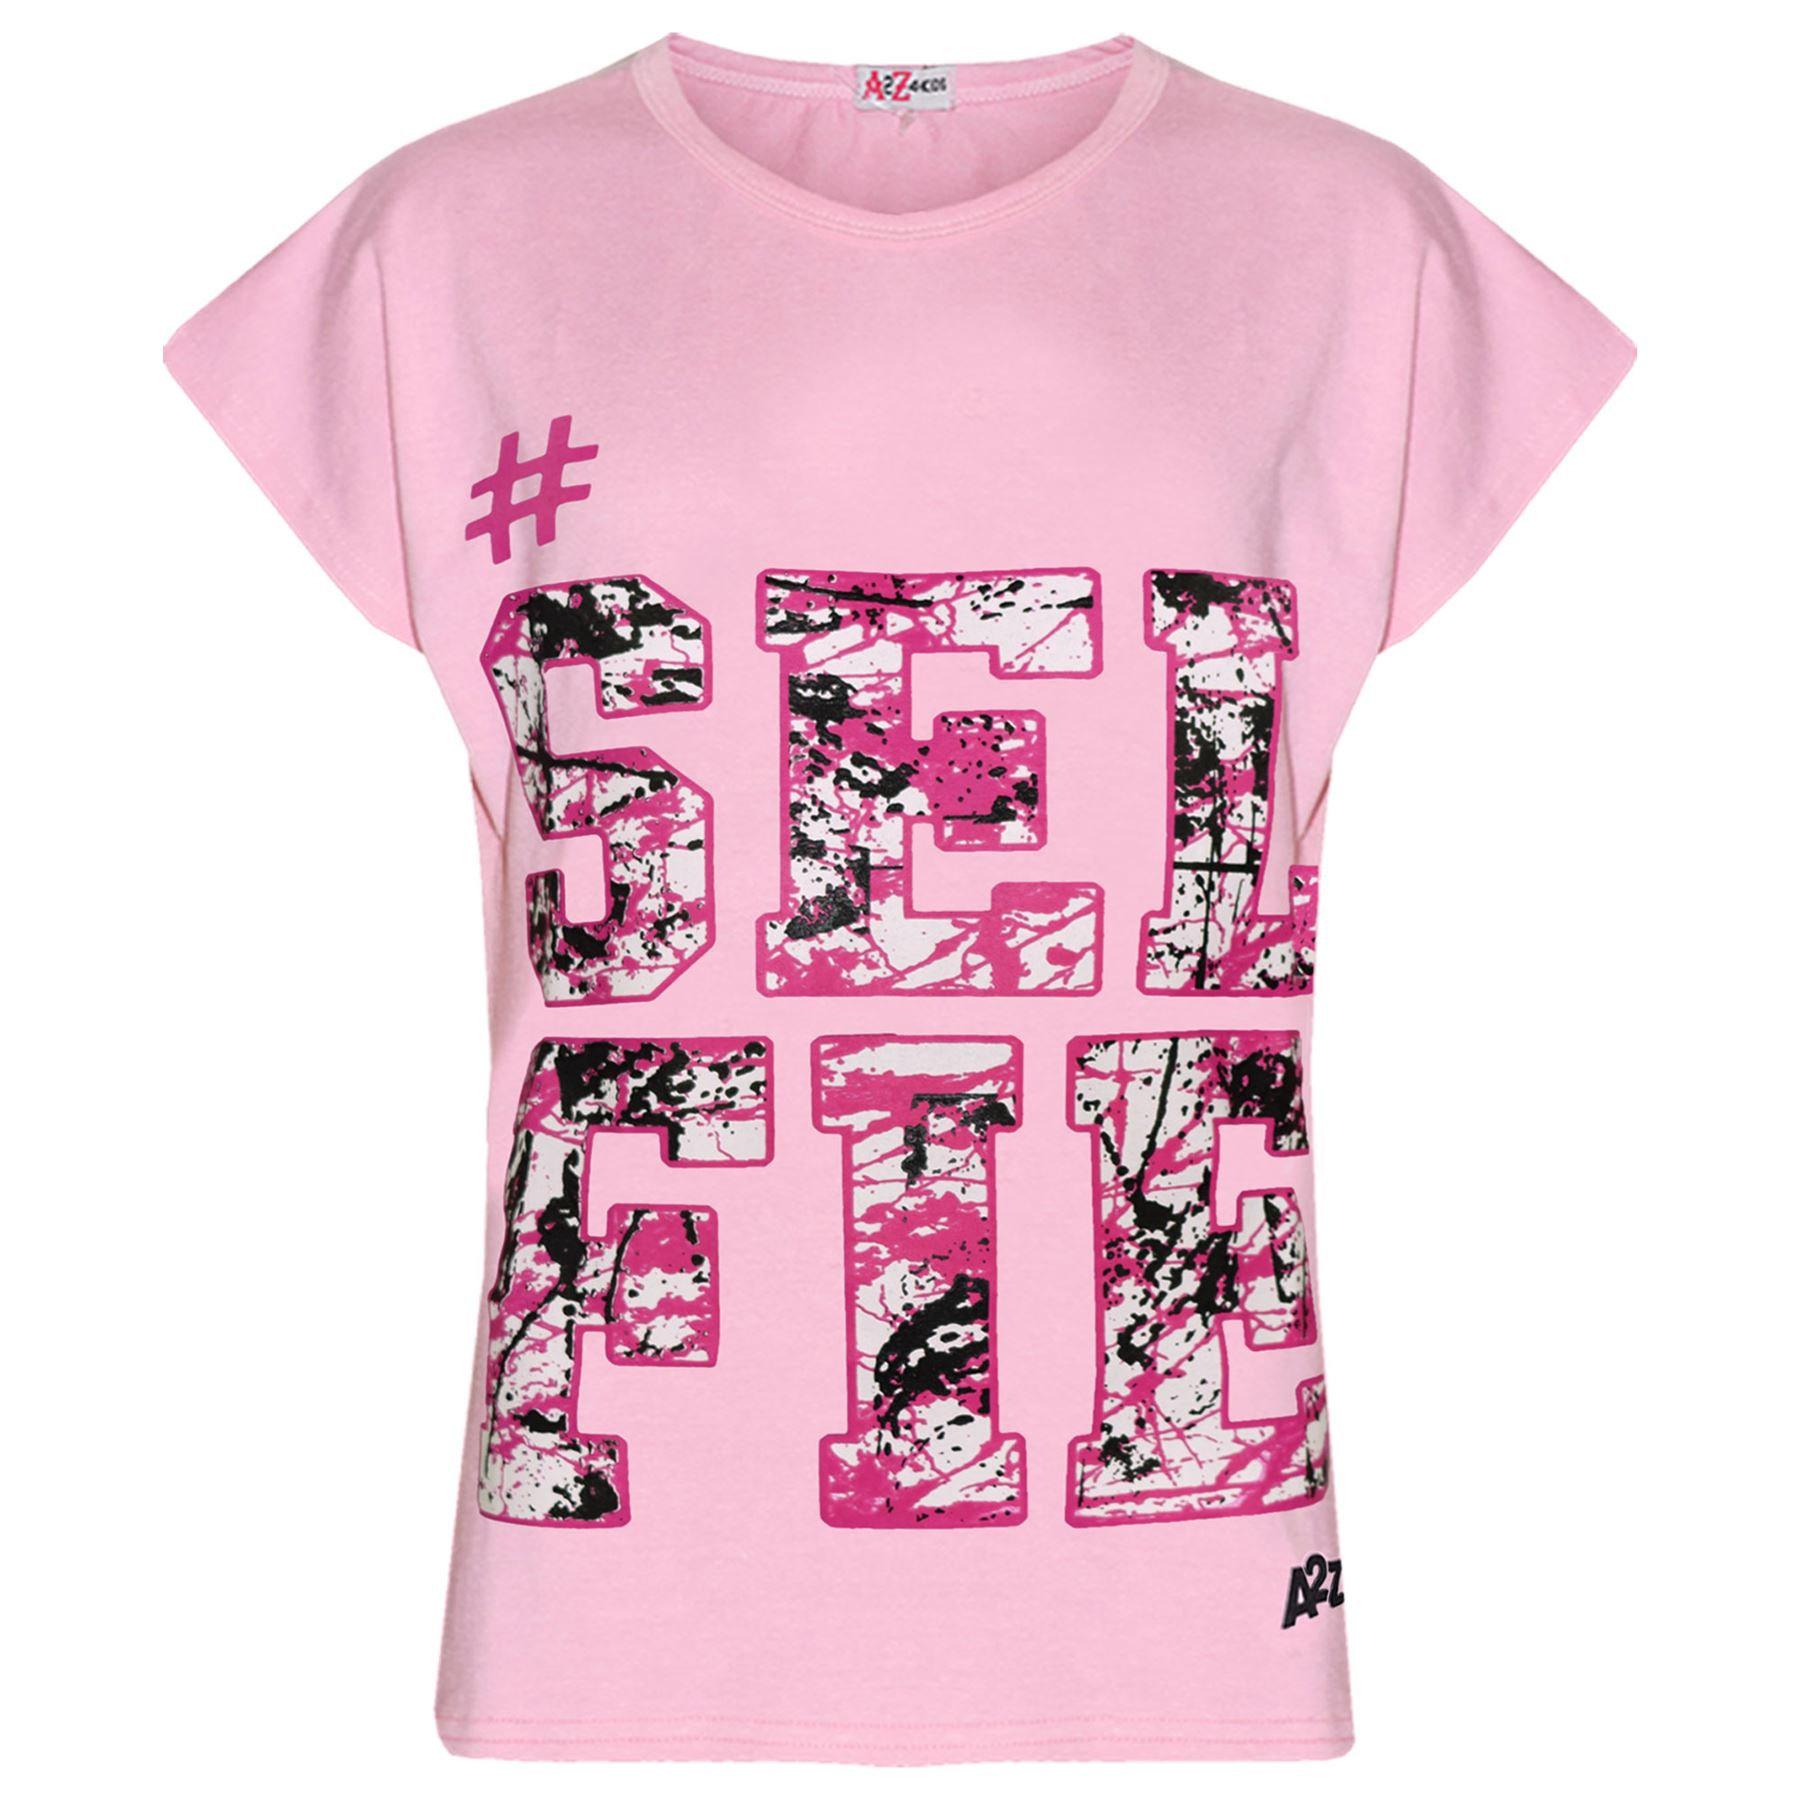 Girls Tops Kids #SELFIE Print T Shirt Top /& Fashion Splash Legging Set 7-13 Year